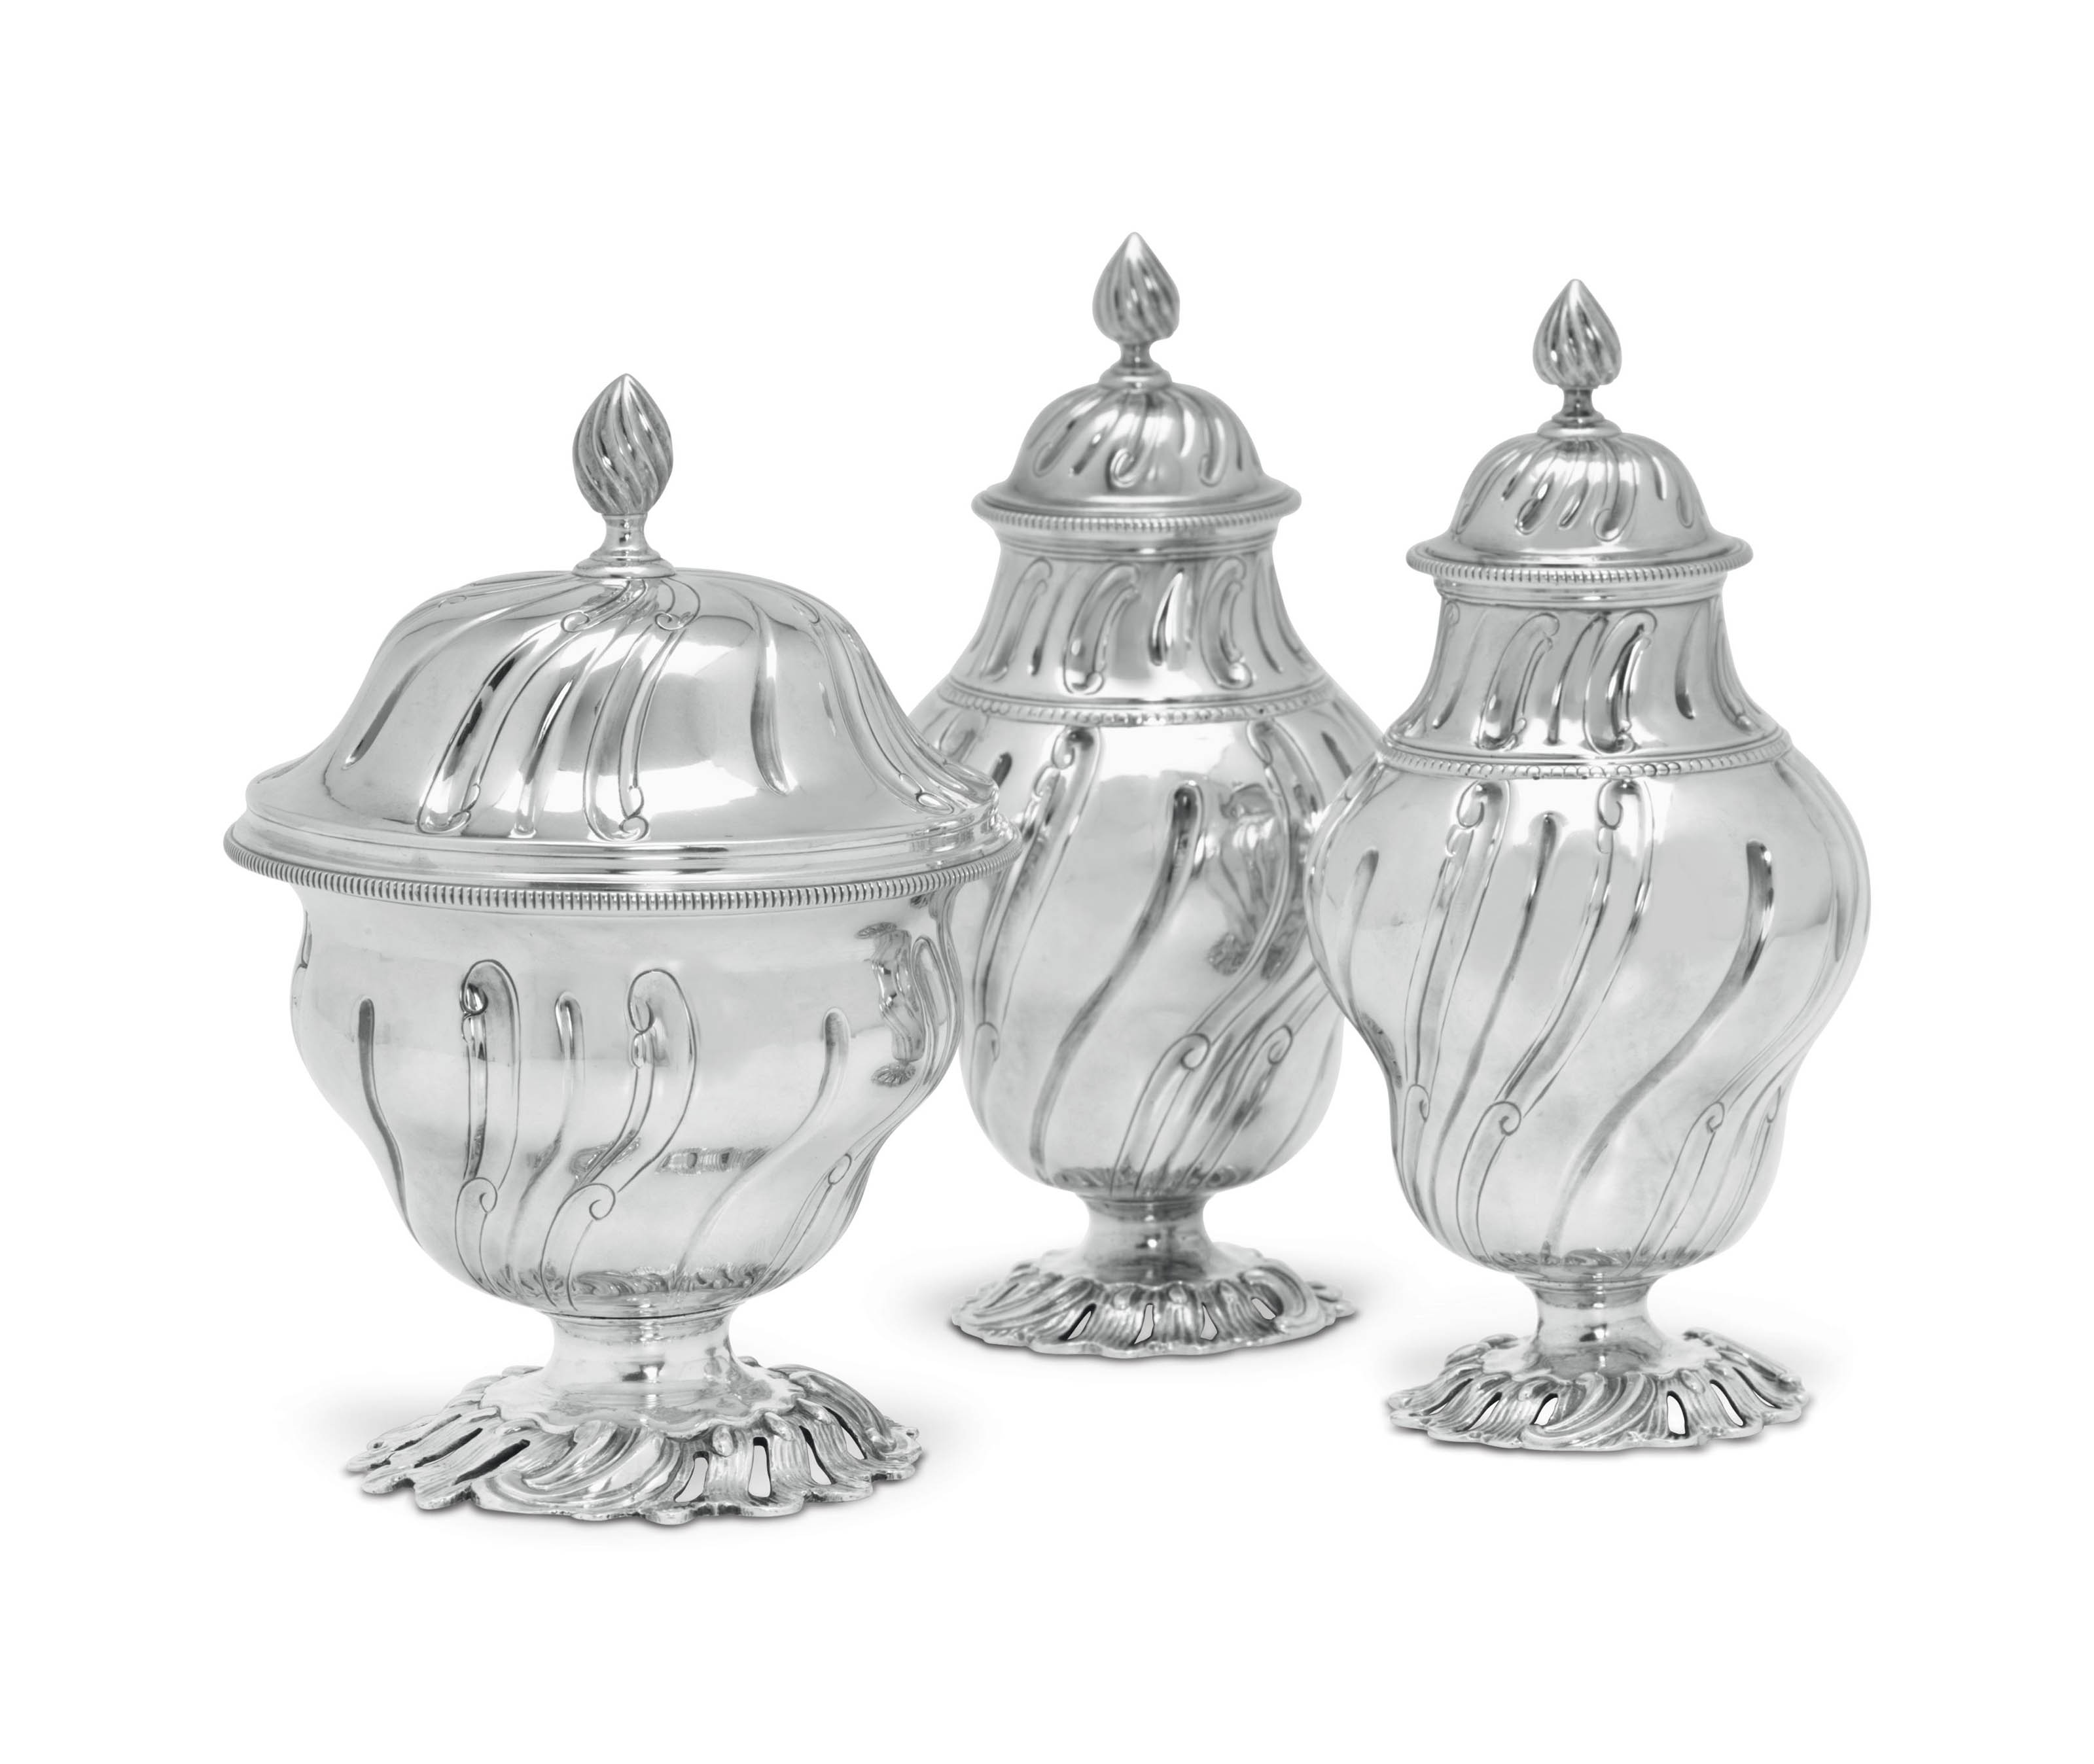 A GEORGE II SILVER SUGAR BOWL AND A PAIR OF TEA CADDIES